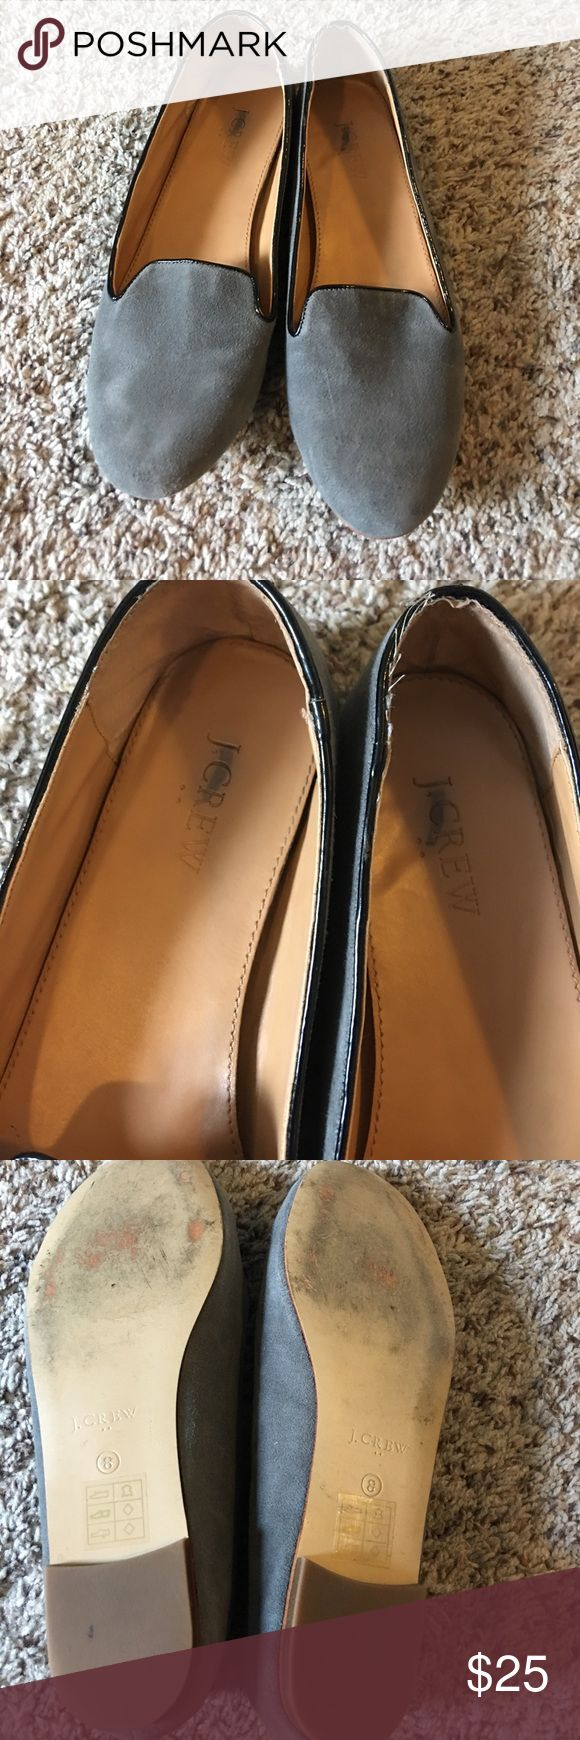 Women's J crew Outlet loafers size 8! I got these loafers at a J crew Outlet in VA and they have the logo crossed out for Outlet reasons, still are legitimate J crew shoes! Fit a size 8 but could fit a 8.5. The color is stone gray with black on the edges. J. Crew Shoes Flats & Loafers